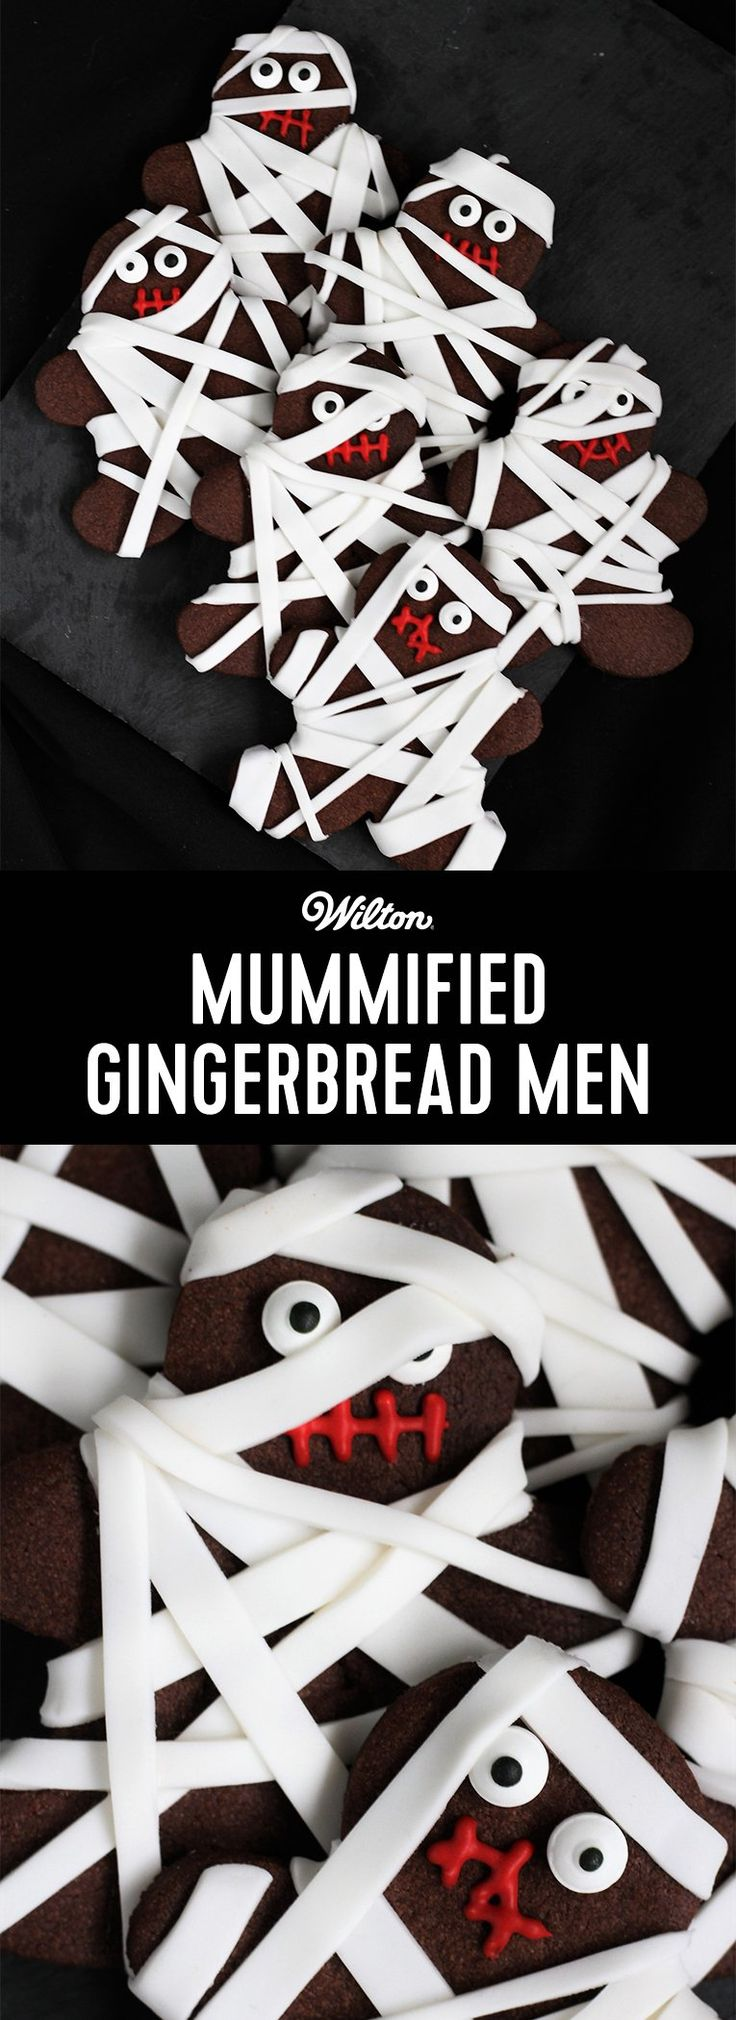 How to Make Mummified Gingerbread Men - 'Trick or Treat' What sort of scary face will you give each of these Mummified Men? Simply wrap gingerbread men cookies will white strips of white fondant for the mummified look! These would look super cute packaged in some Halloween treat bags.